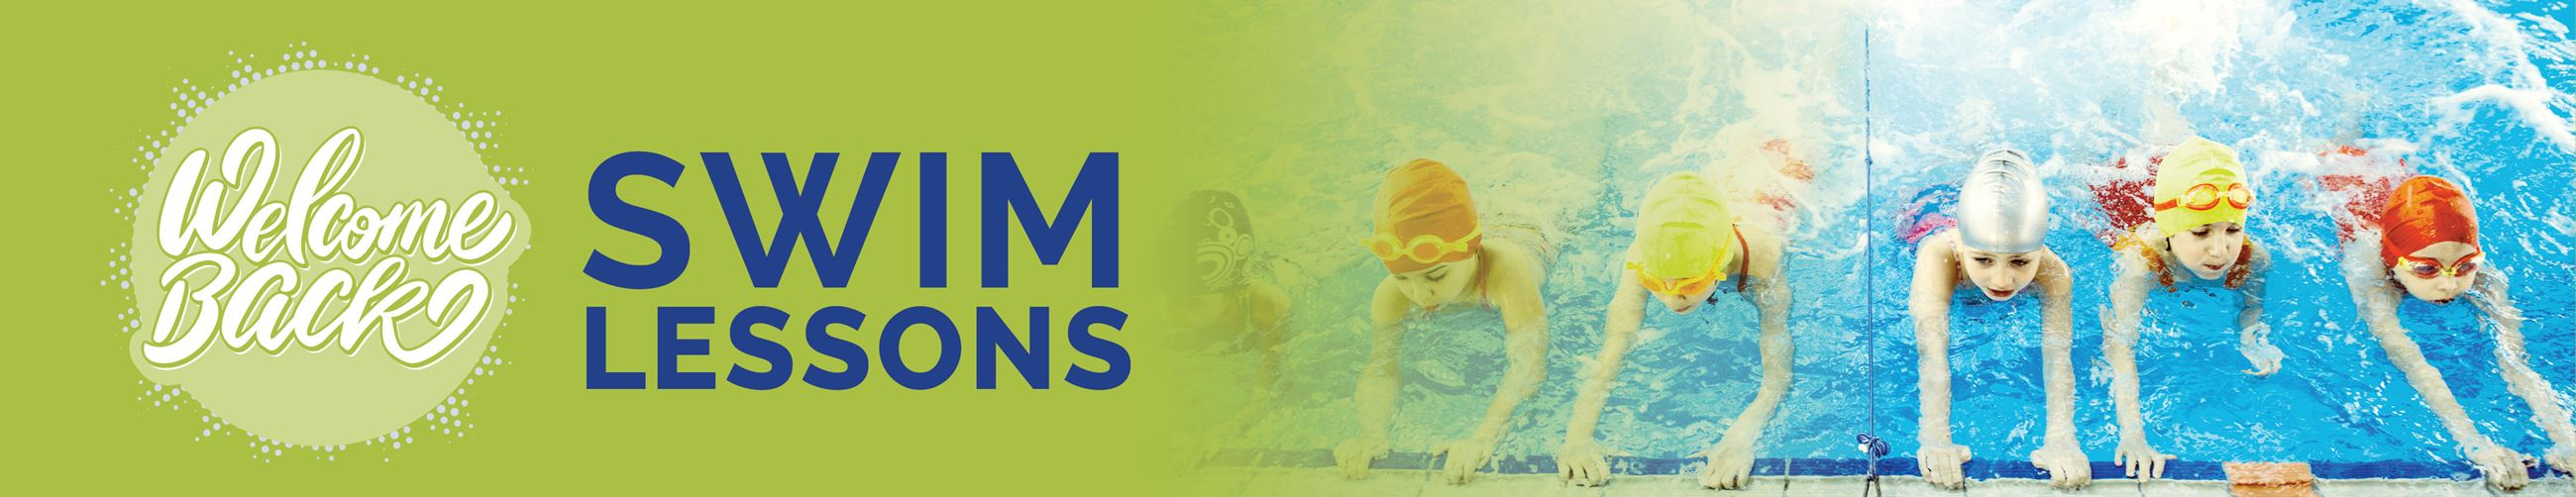 Swimming Lesson Banner